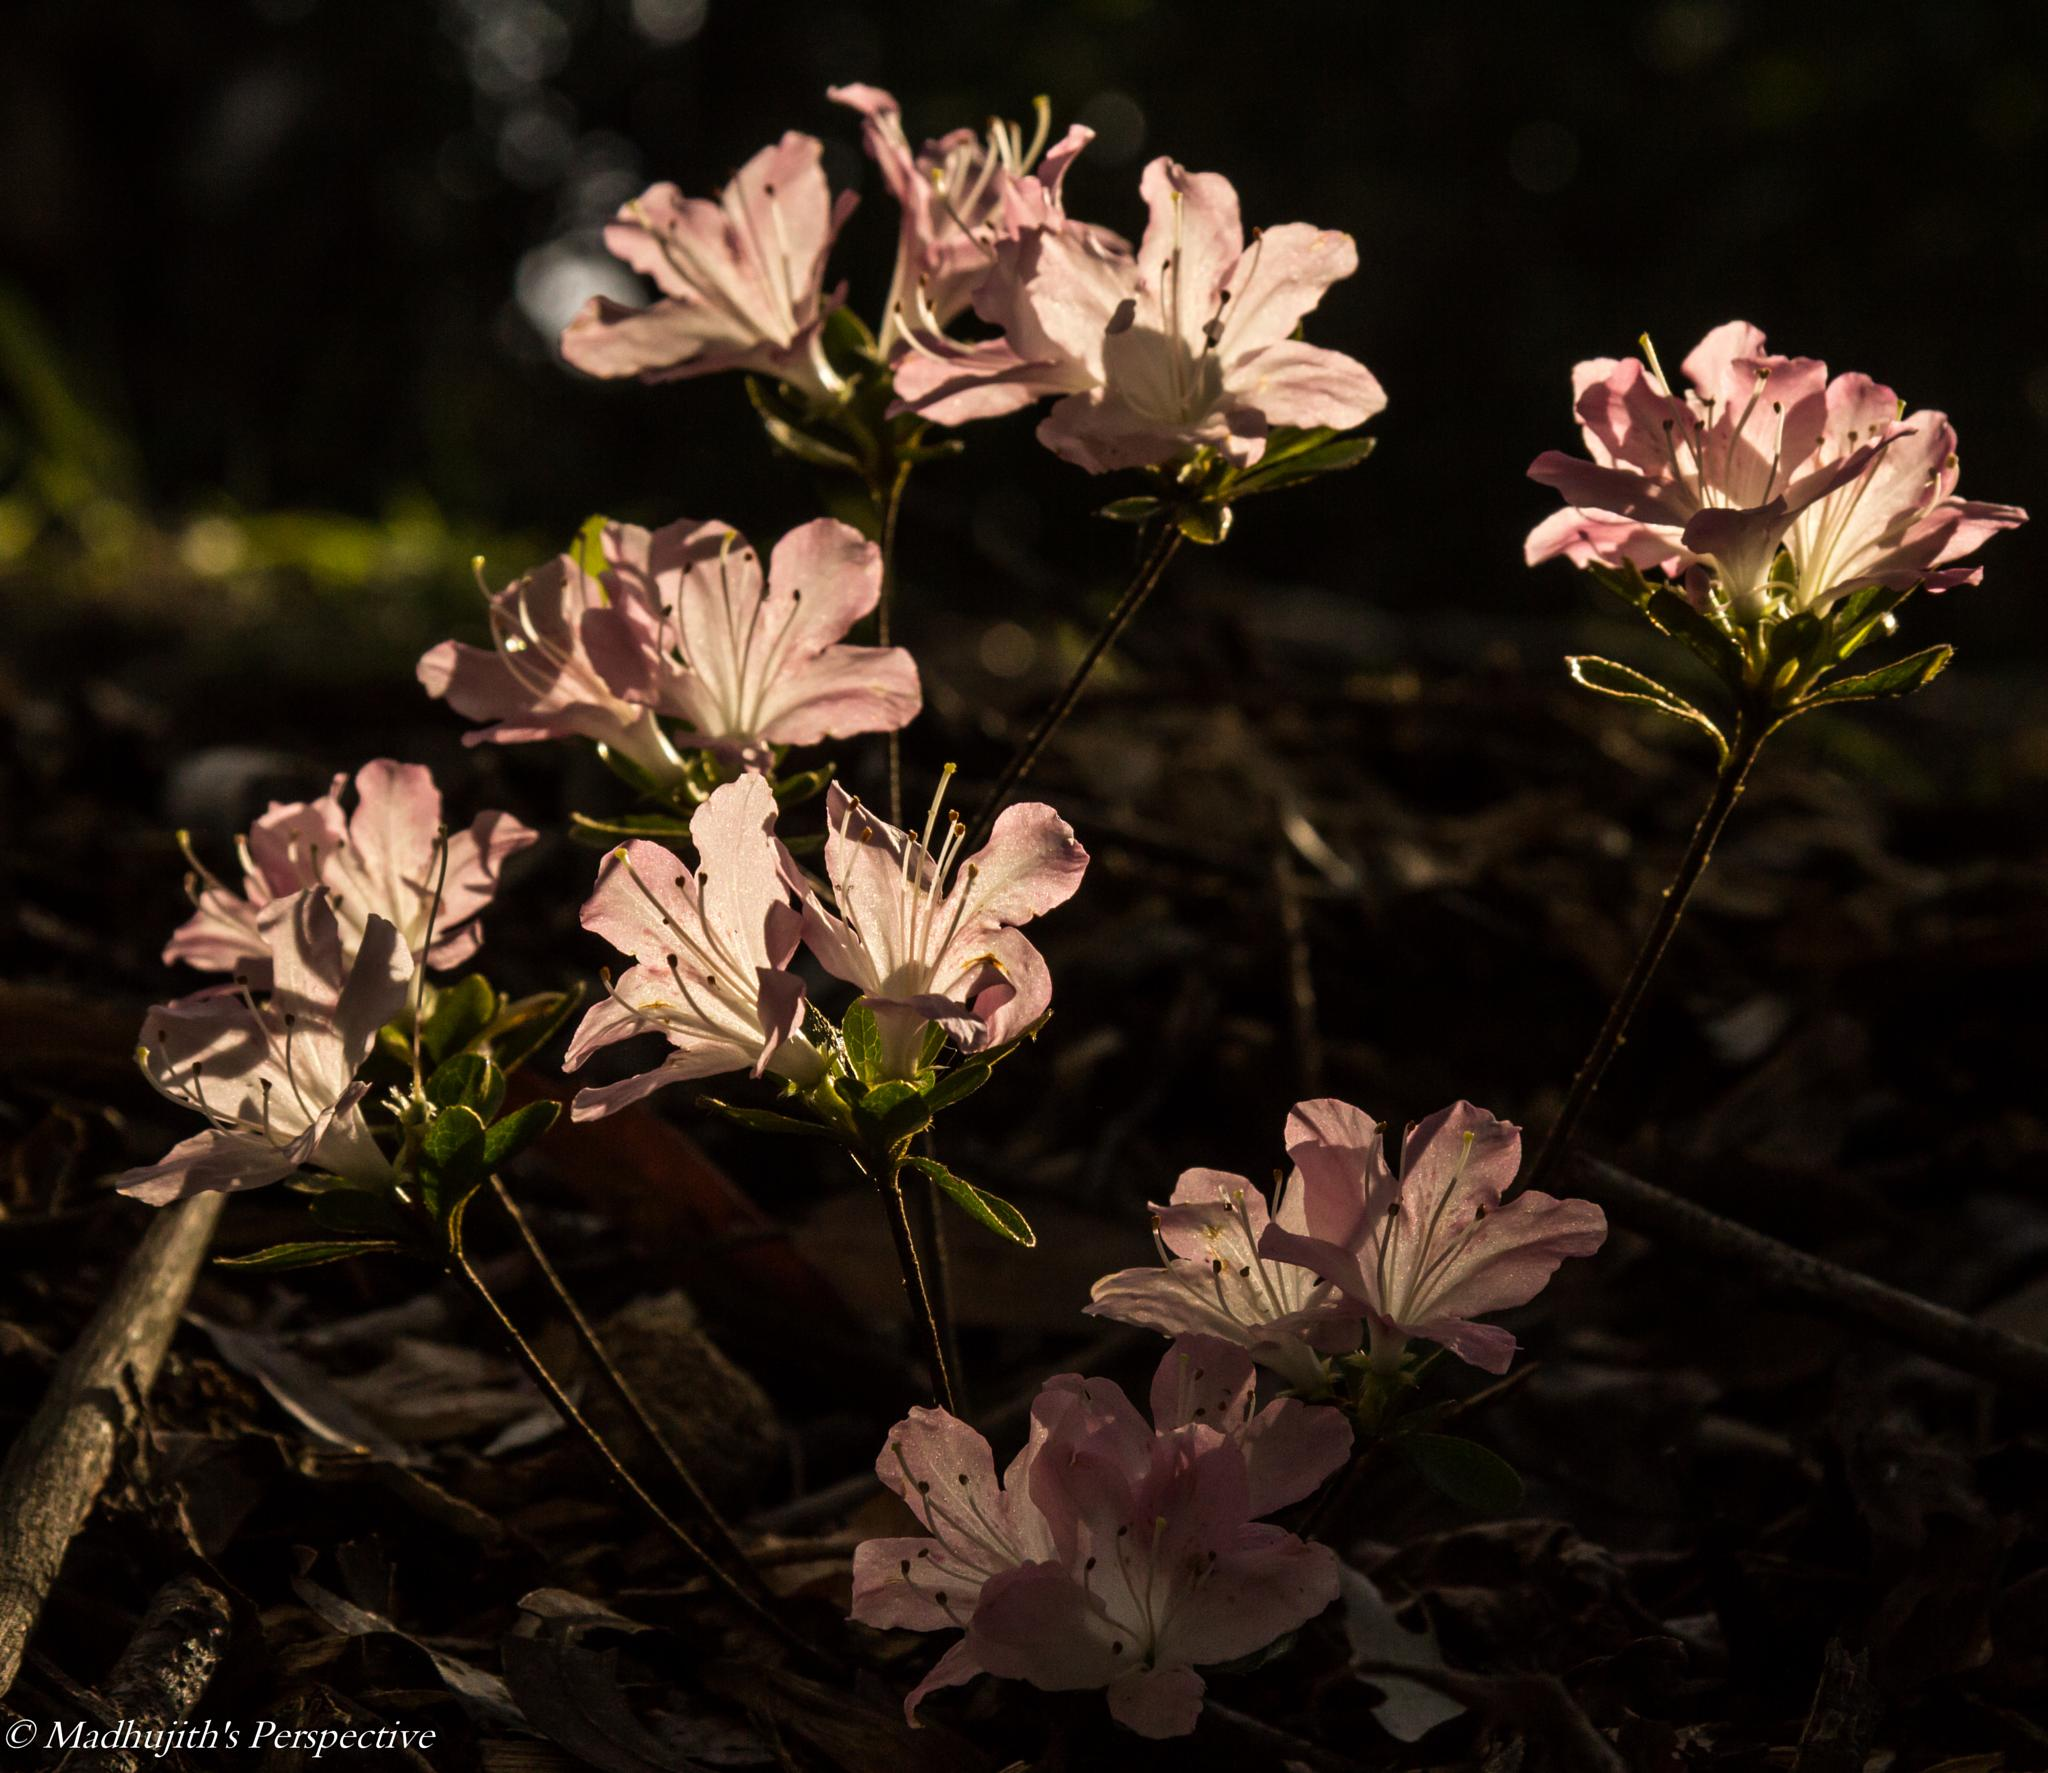 When the Light Shines by madhujith